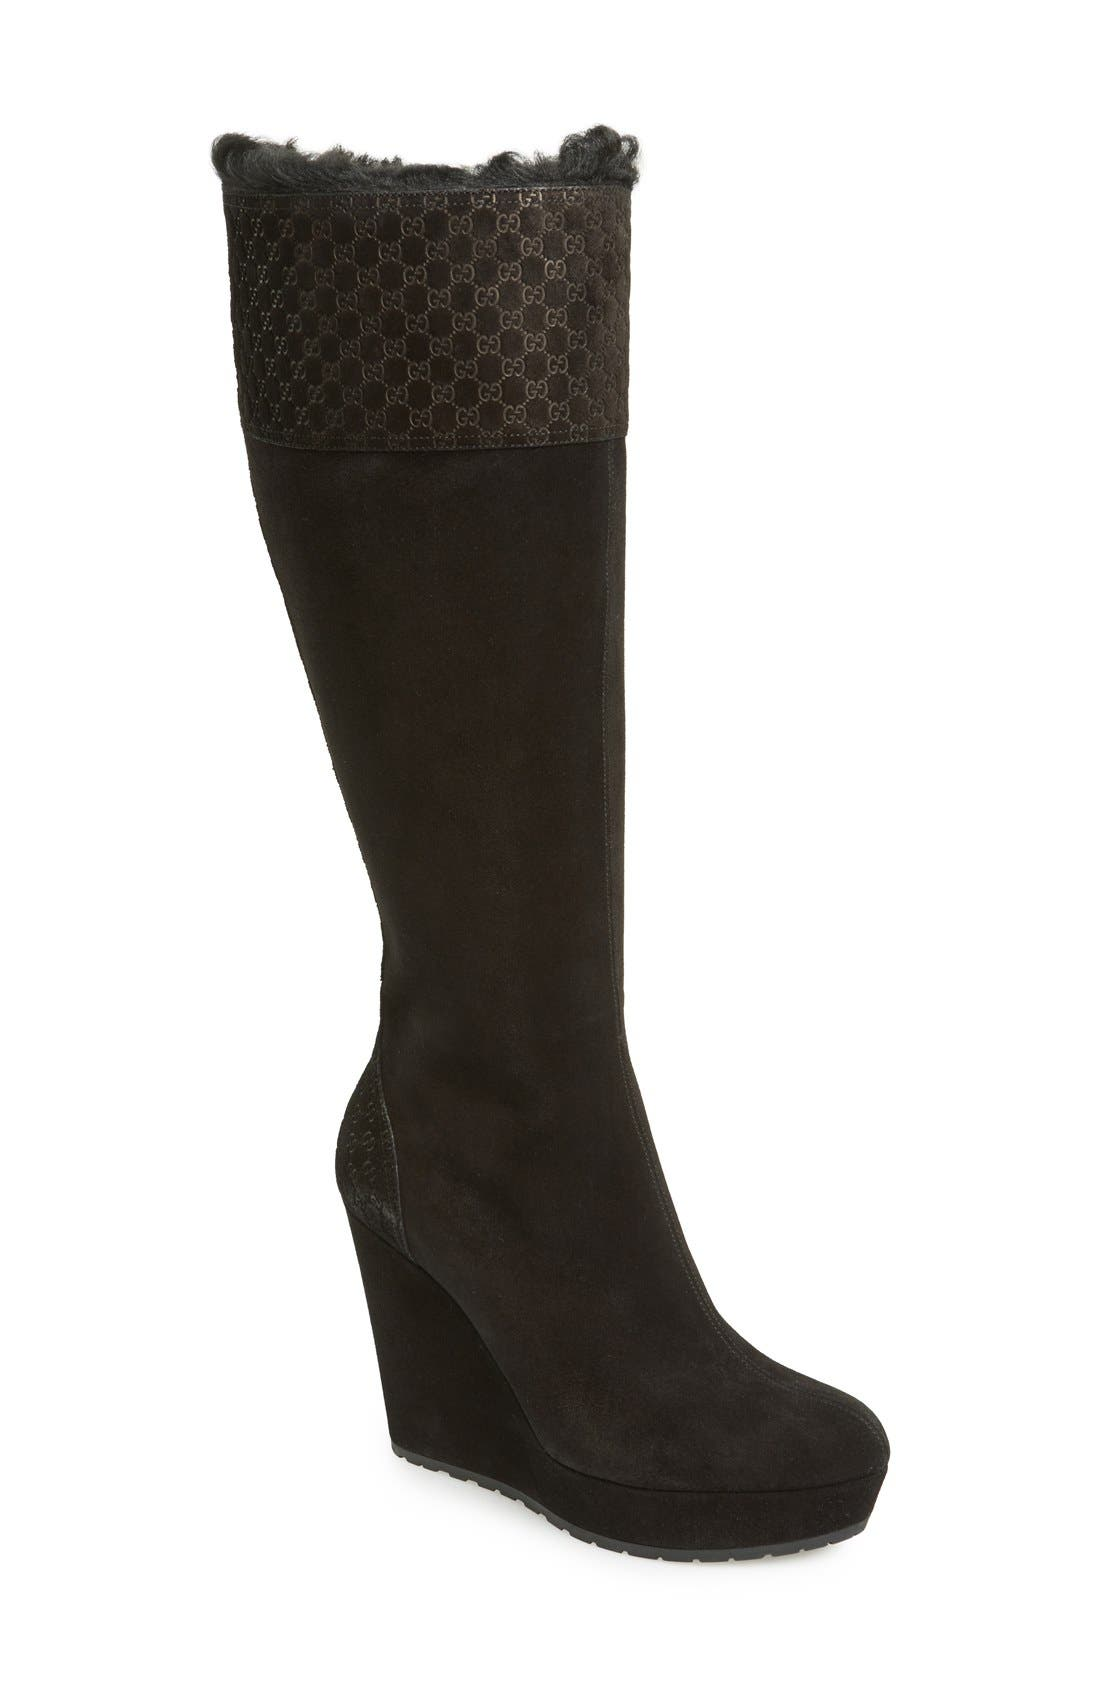 Alternate Image 1 Selected - Gucci 'Courtney' Boot